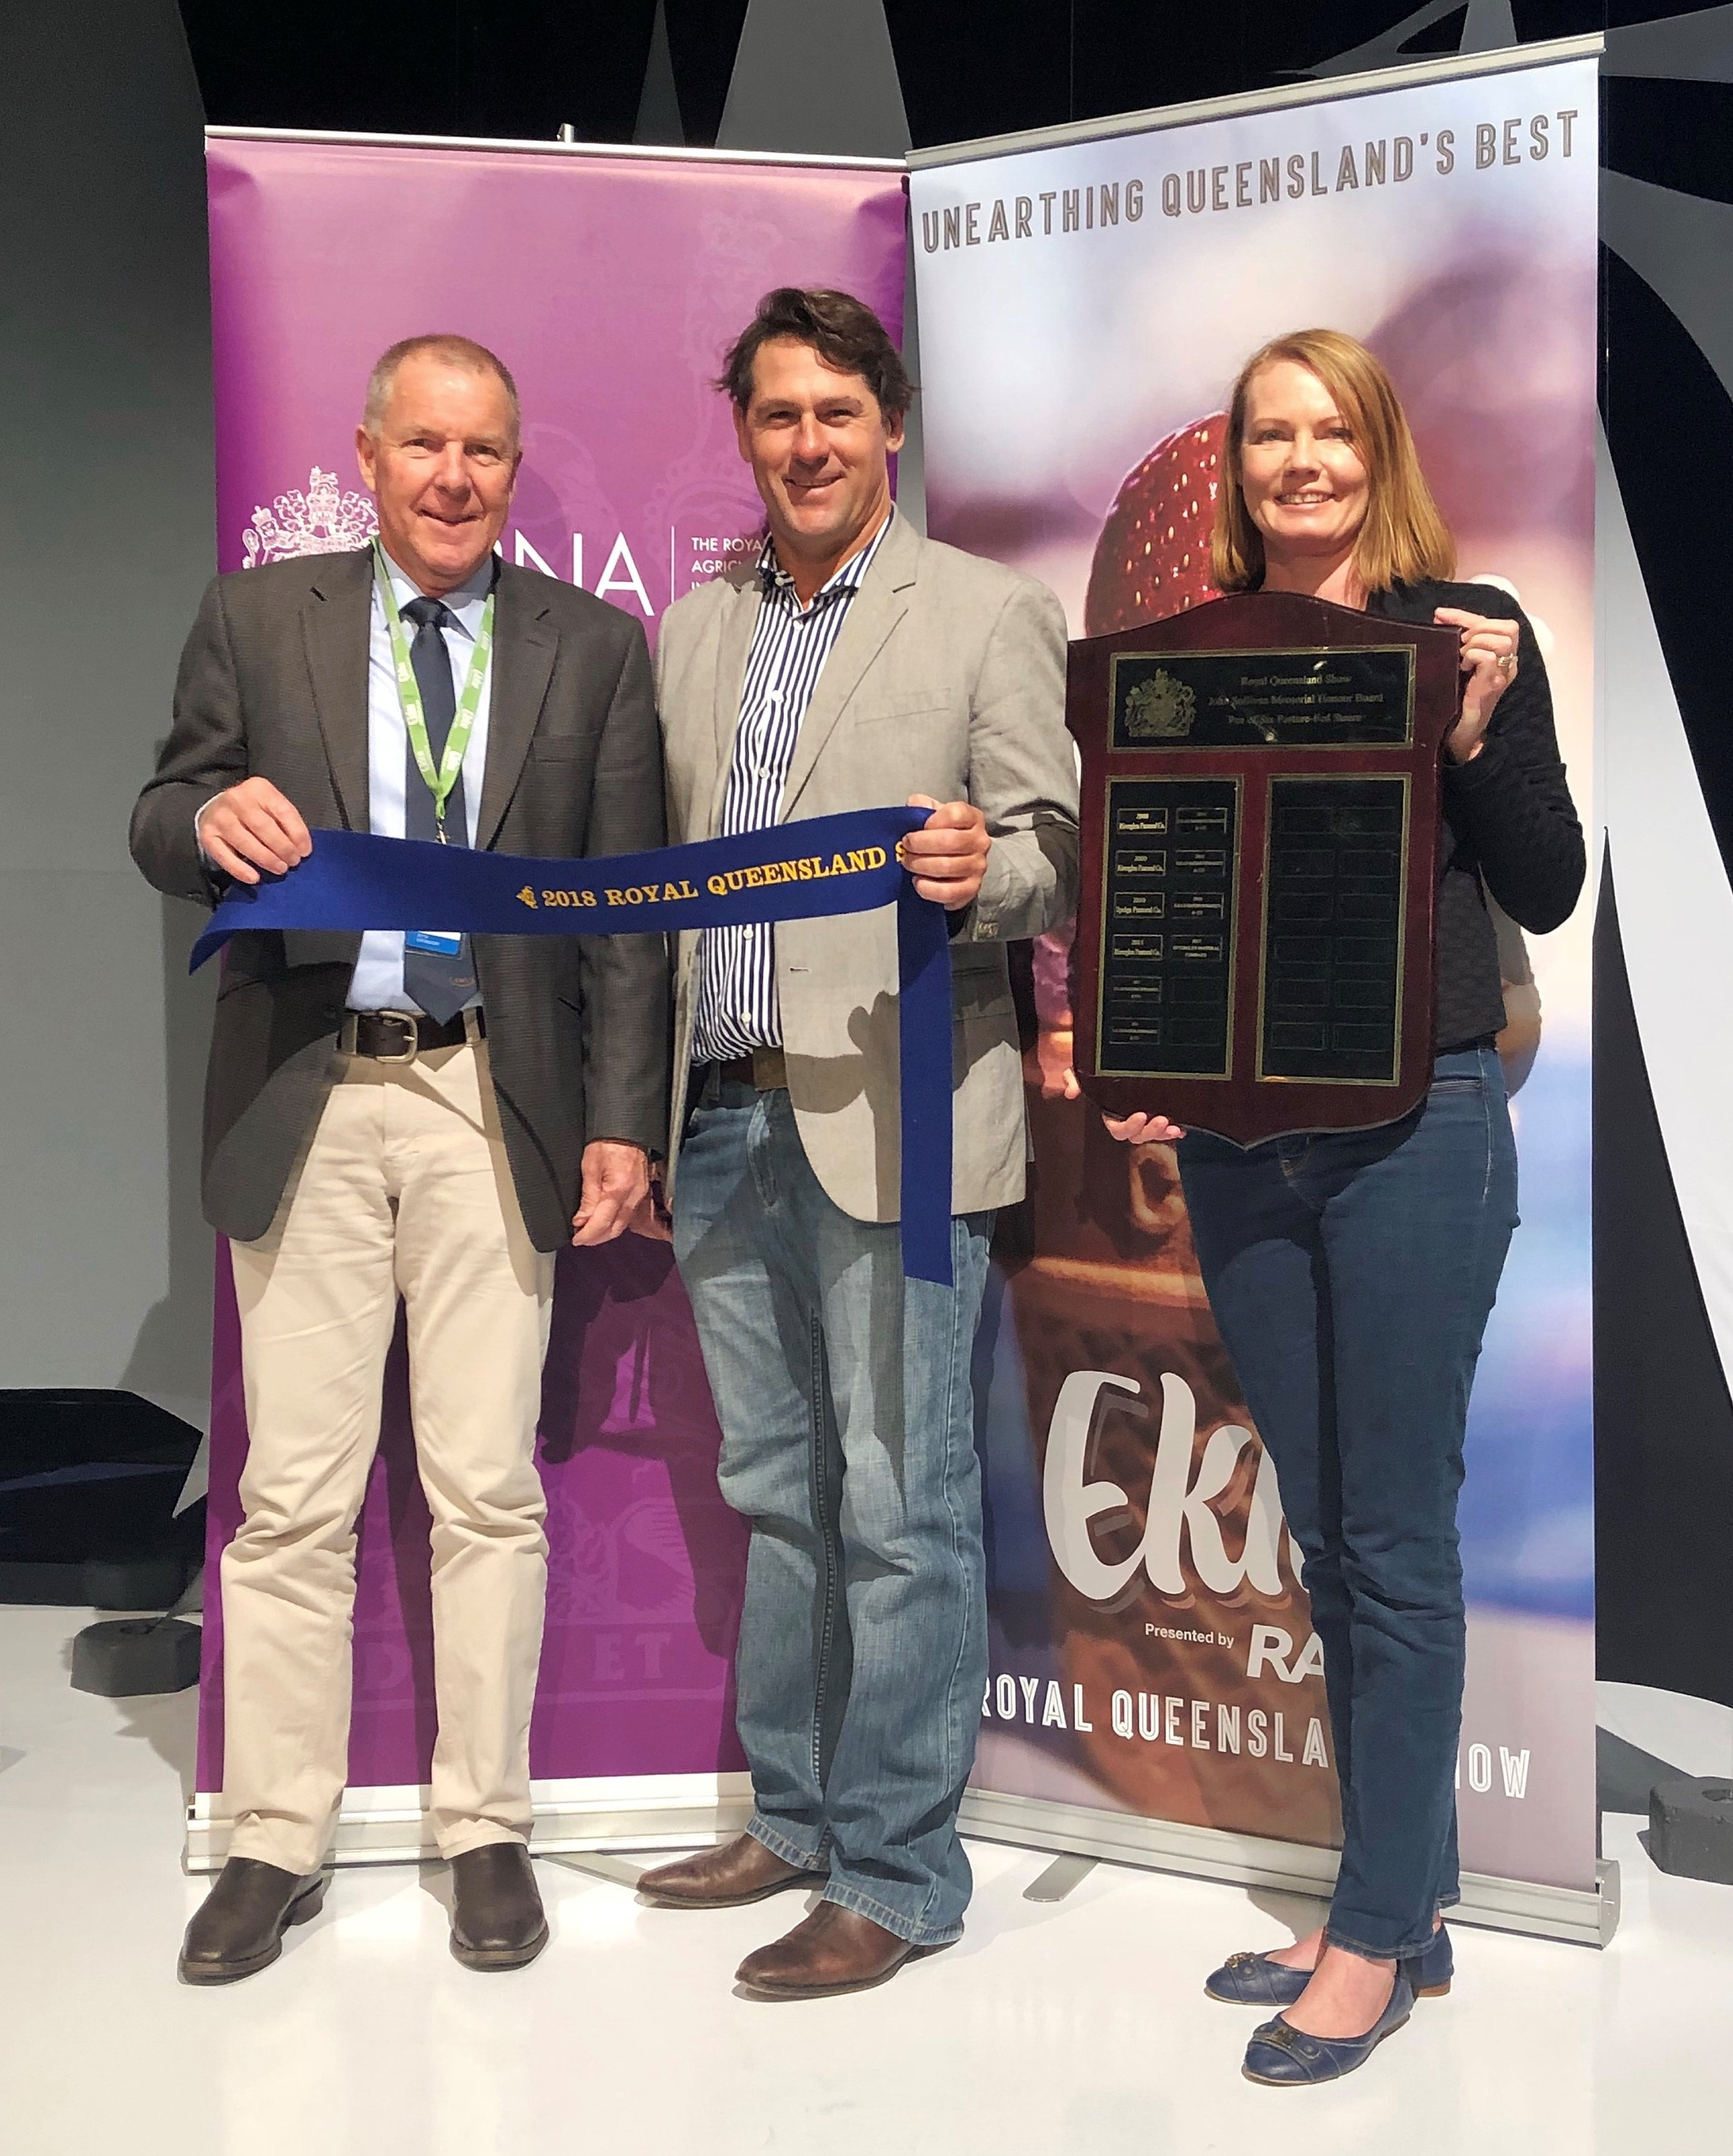 Paddock to Palate 2018 Result: 1st Best Weight Gain